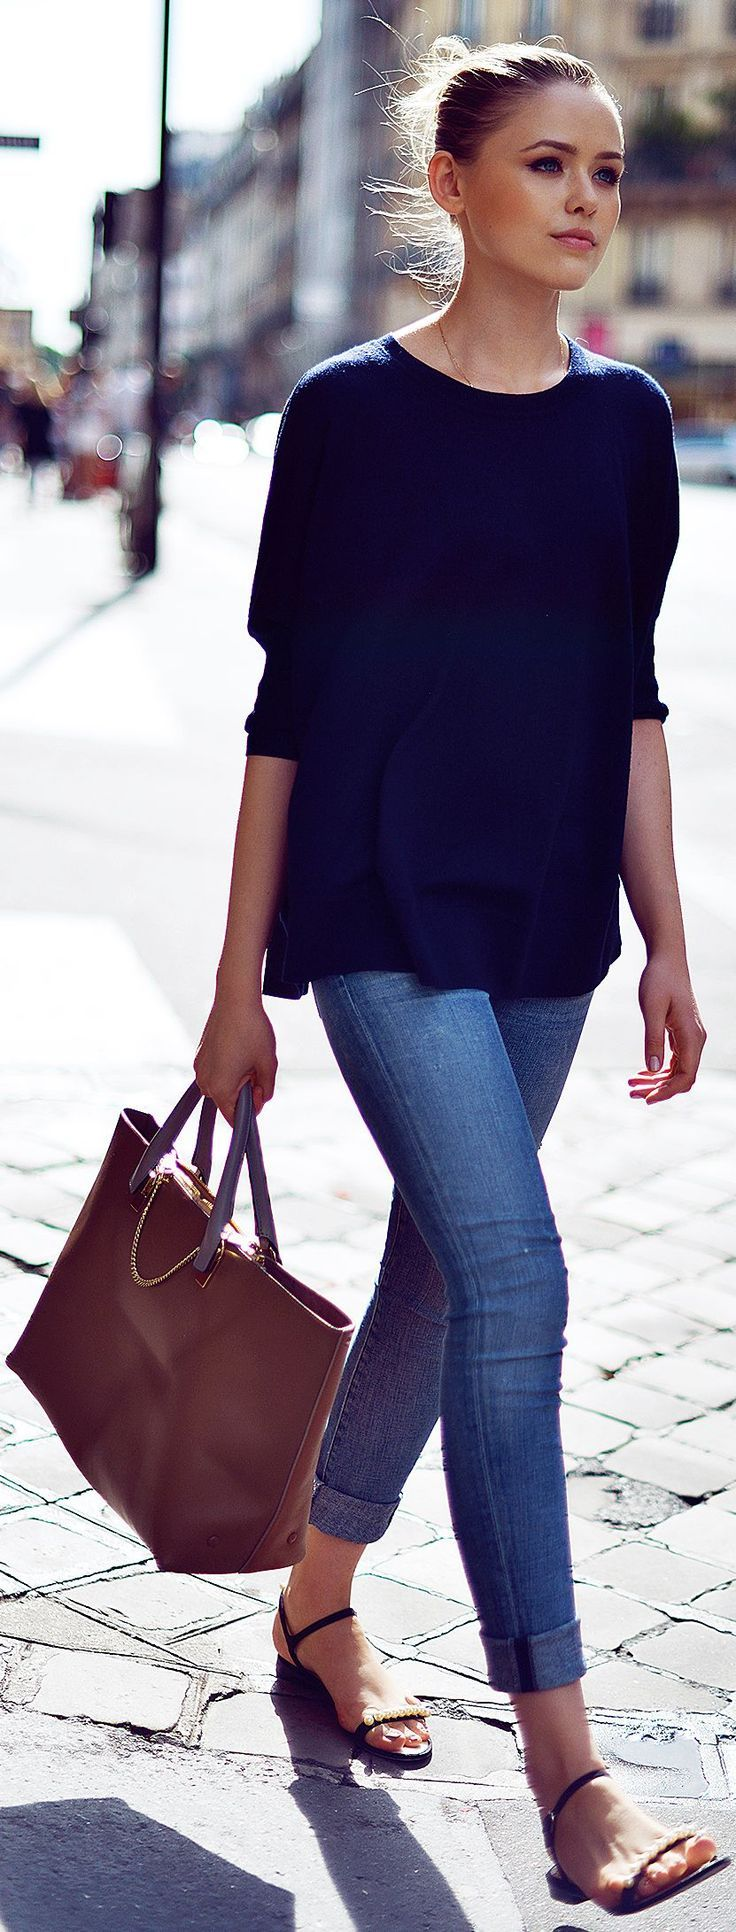 7 Cool Spring 7 Casual Outfits For Girls - Styleoholic